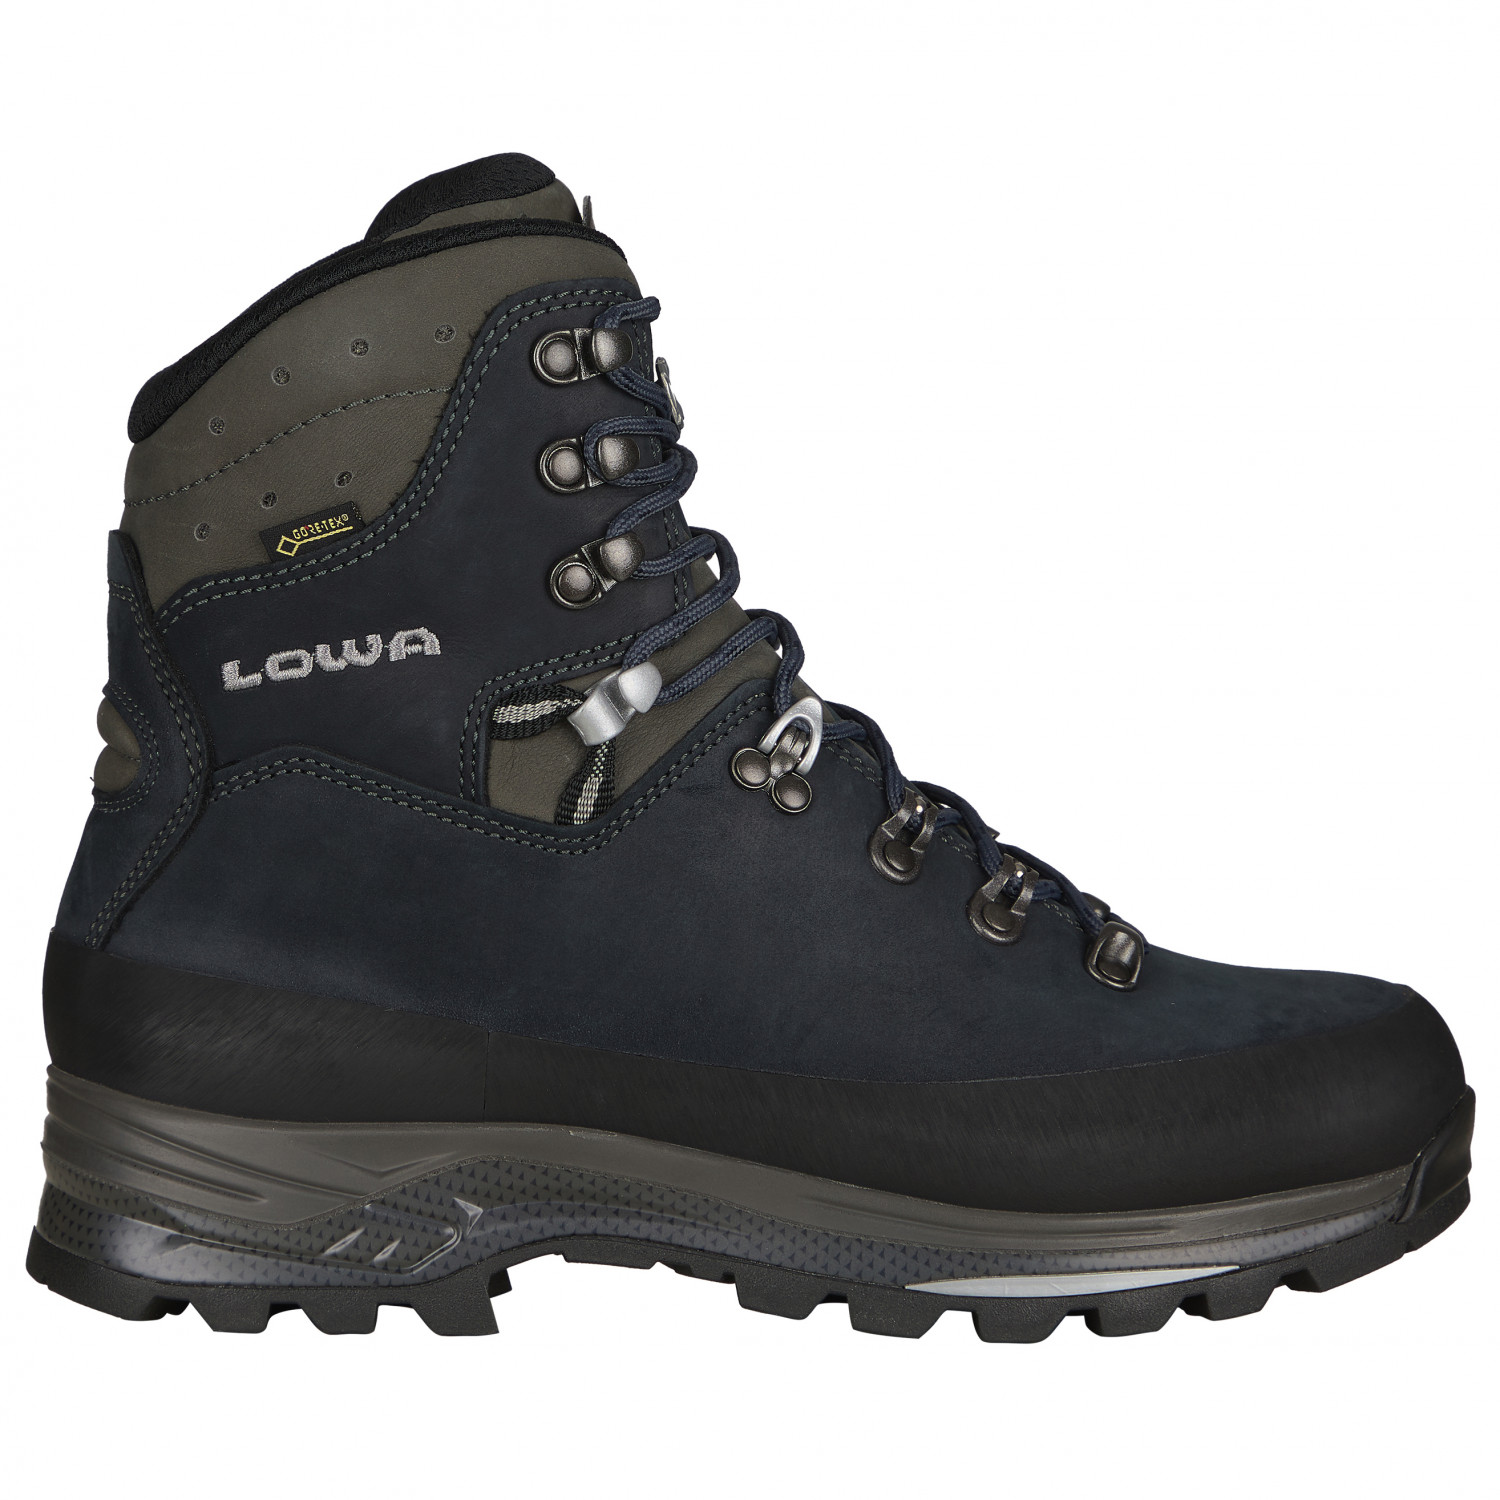 8470f1bb57a2cb Lowa Tibet GTX - Mountaineering Boots Men's | Free UK Delivery ...